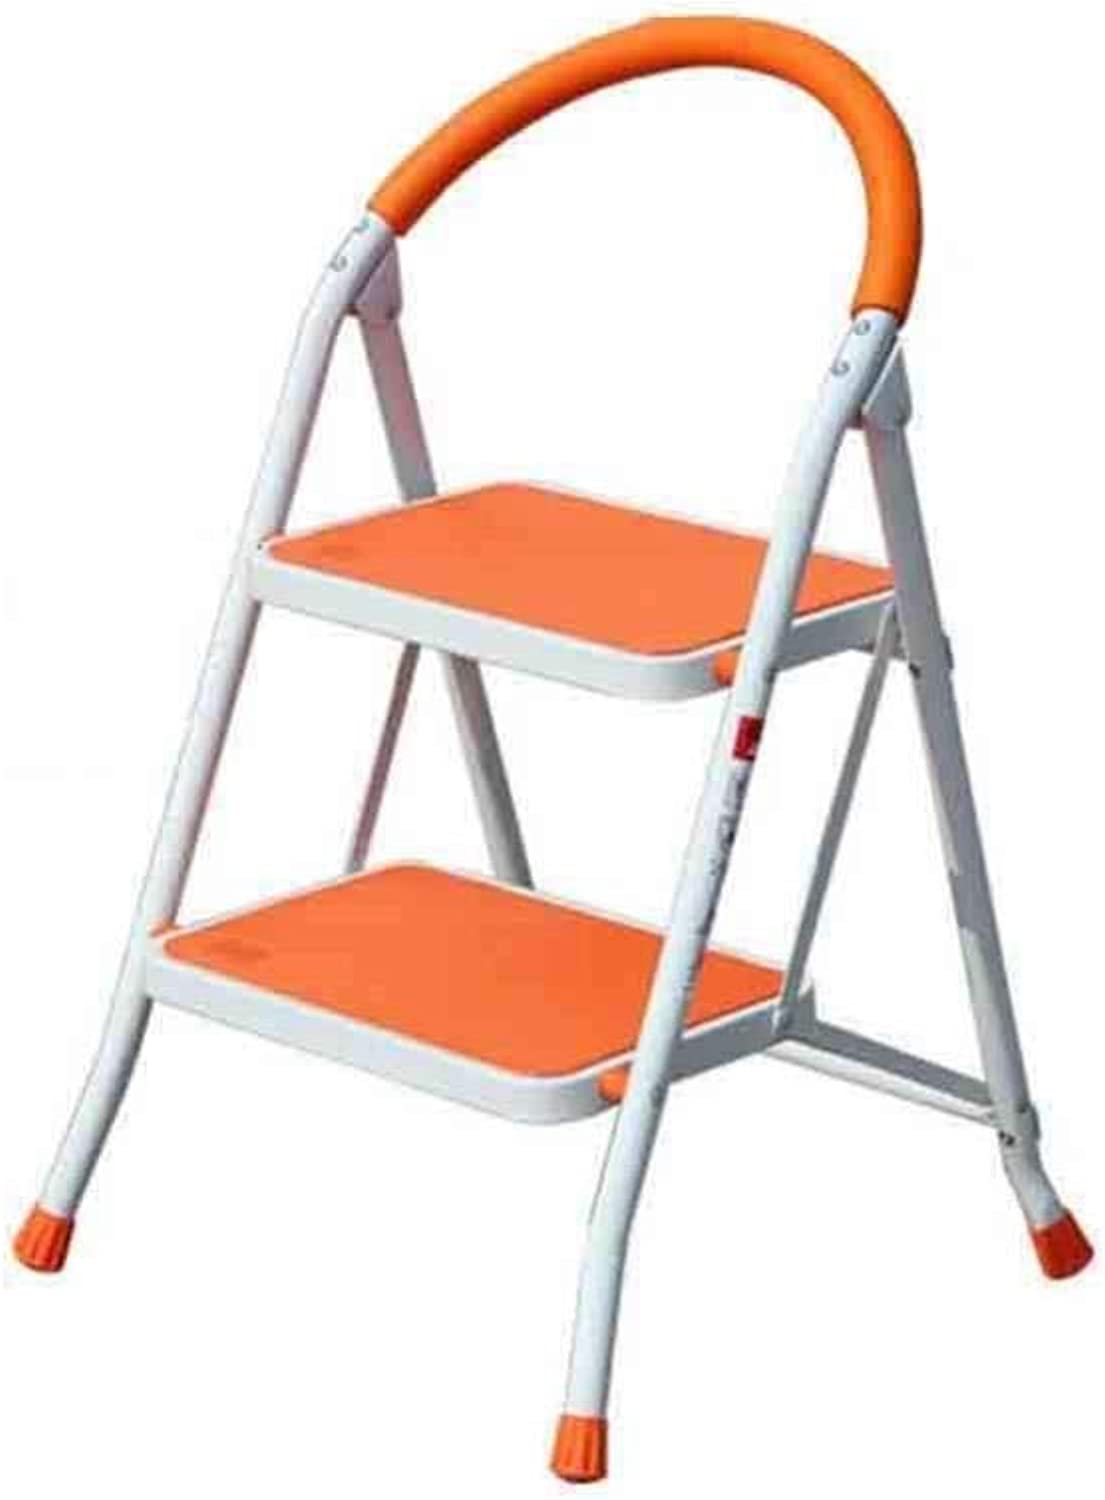 XITER 2 3 Step Folding Ladder Stool Step Stool, Heavy Duty Iron Portable With Anti-Slip Mat ladders (color   orange, Size   2 floors)